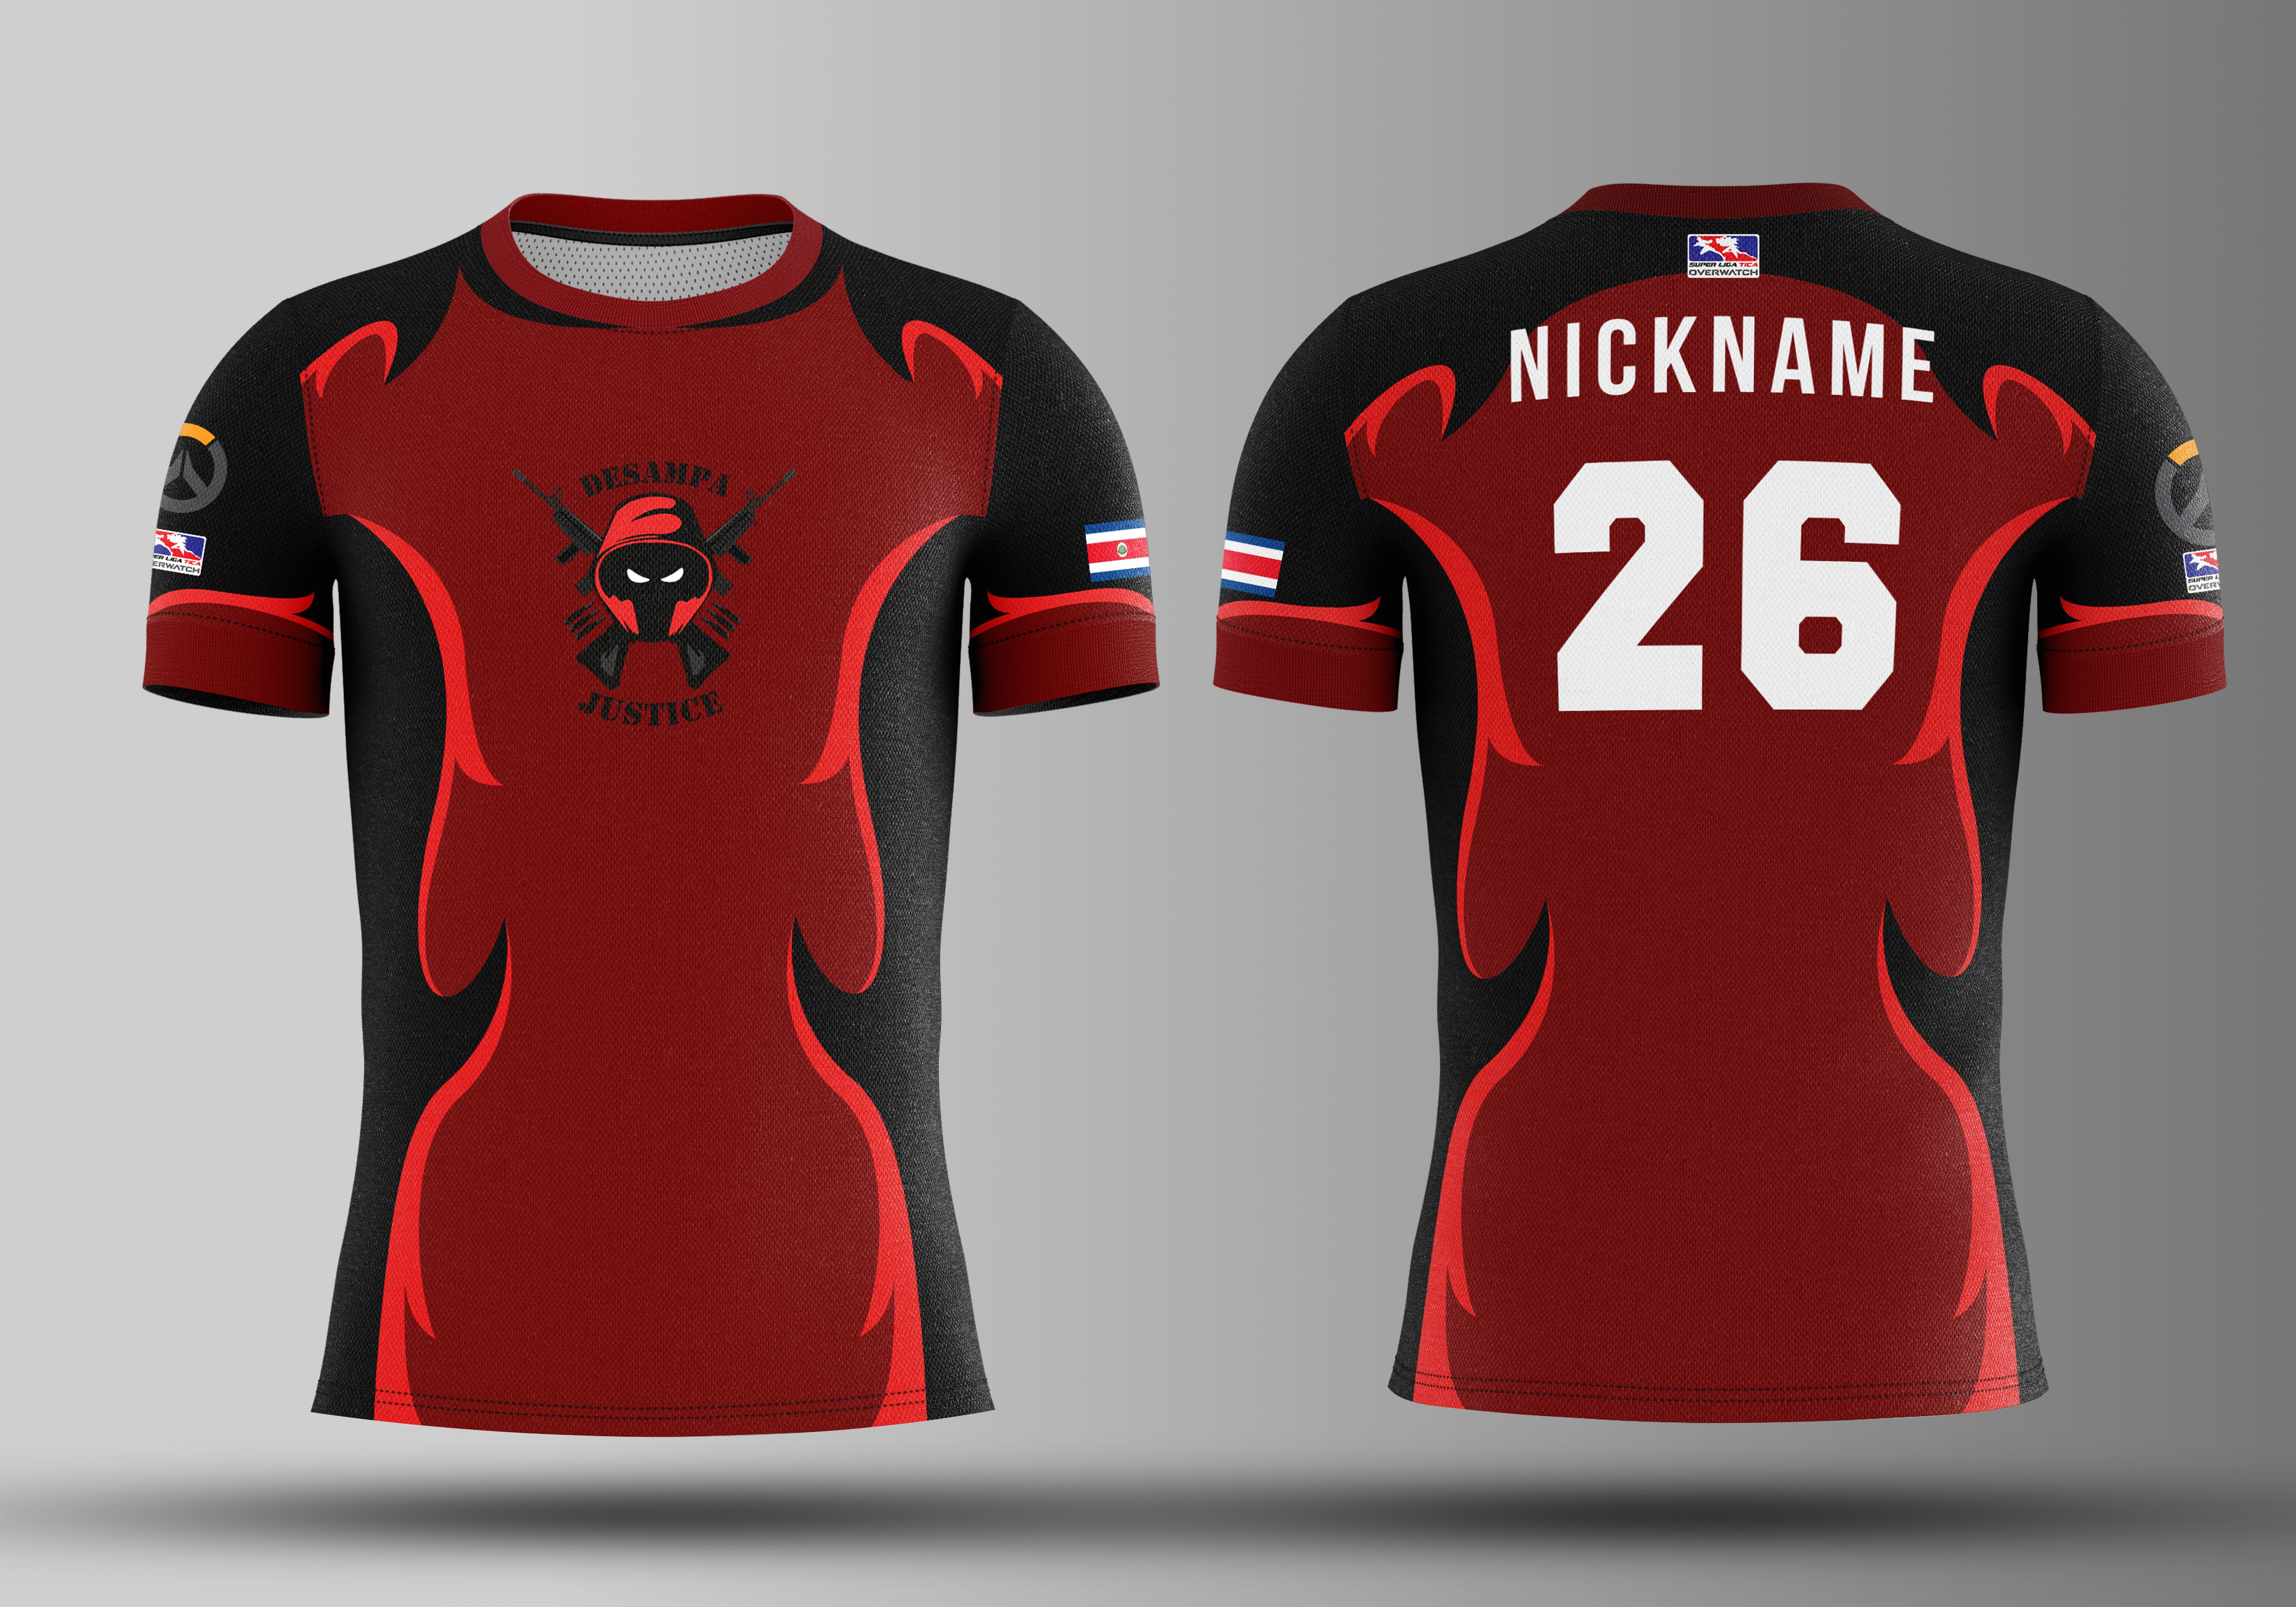 Download I Will Design Jersey For Esports Soccer Etc In 24 Hours Sport Shirt Design Sports Shirts Grunt Style Shirts